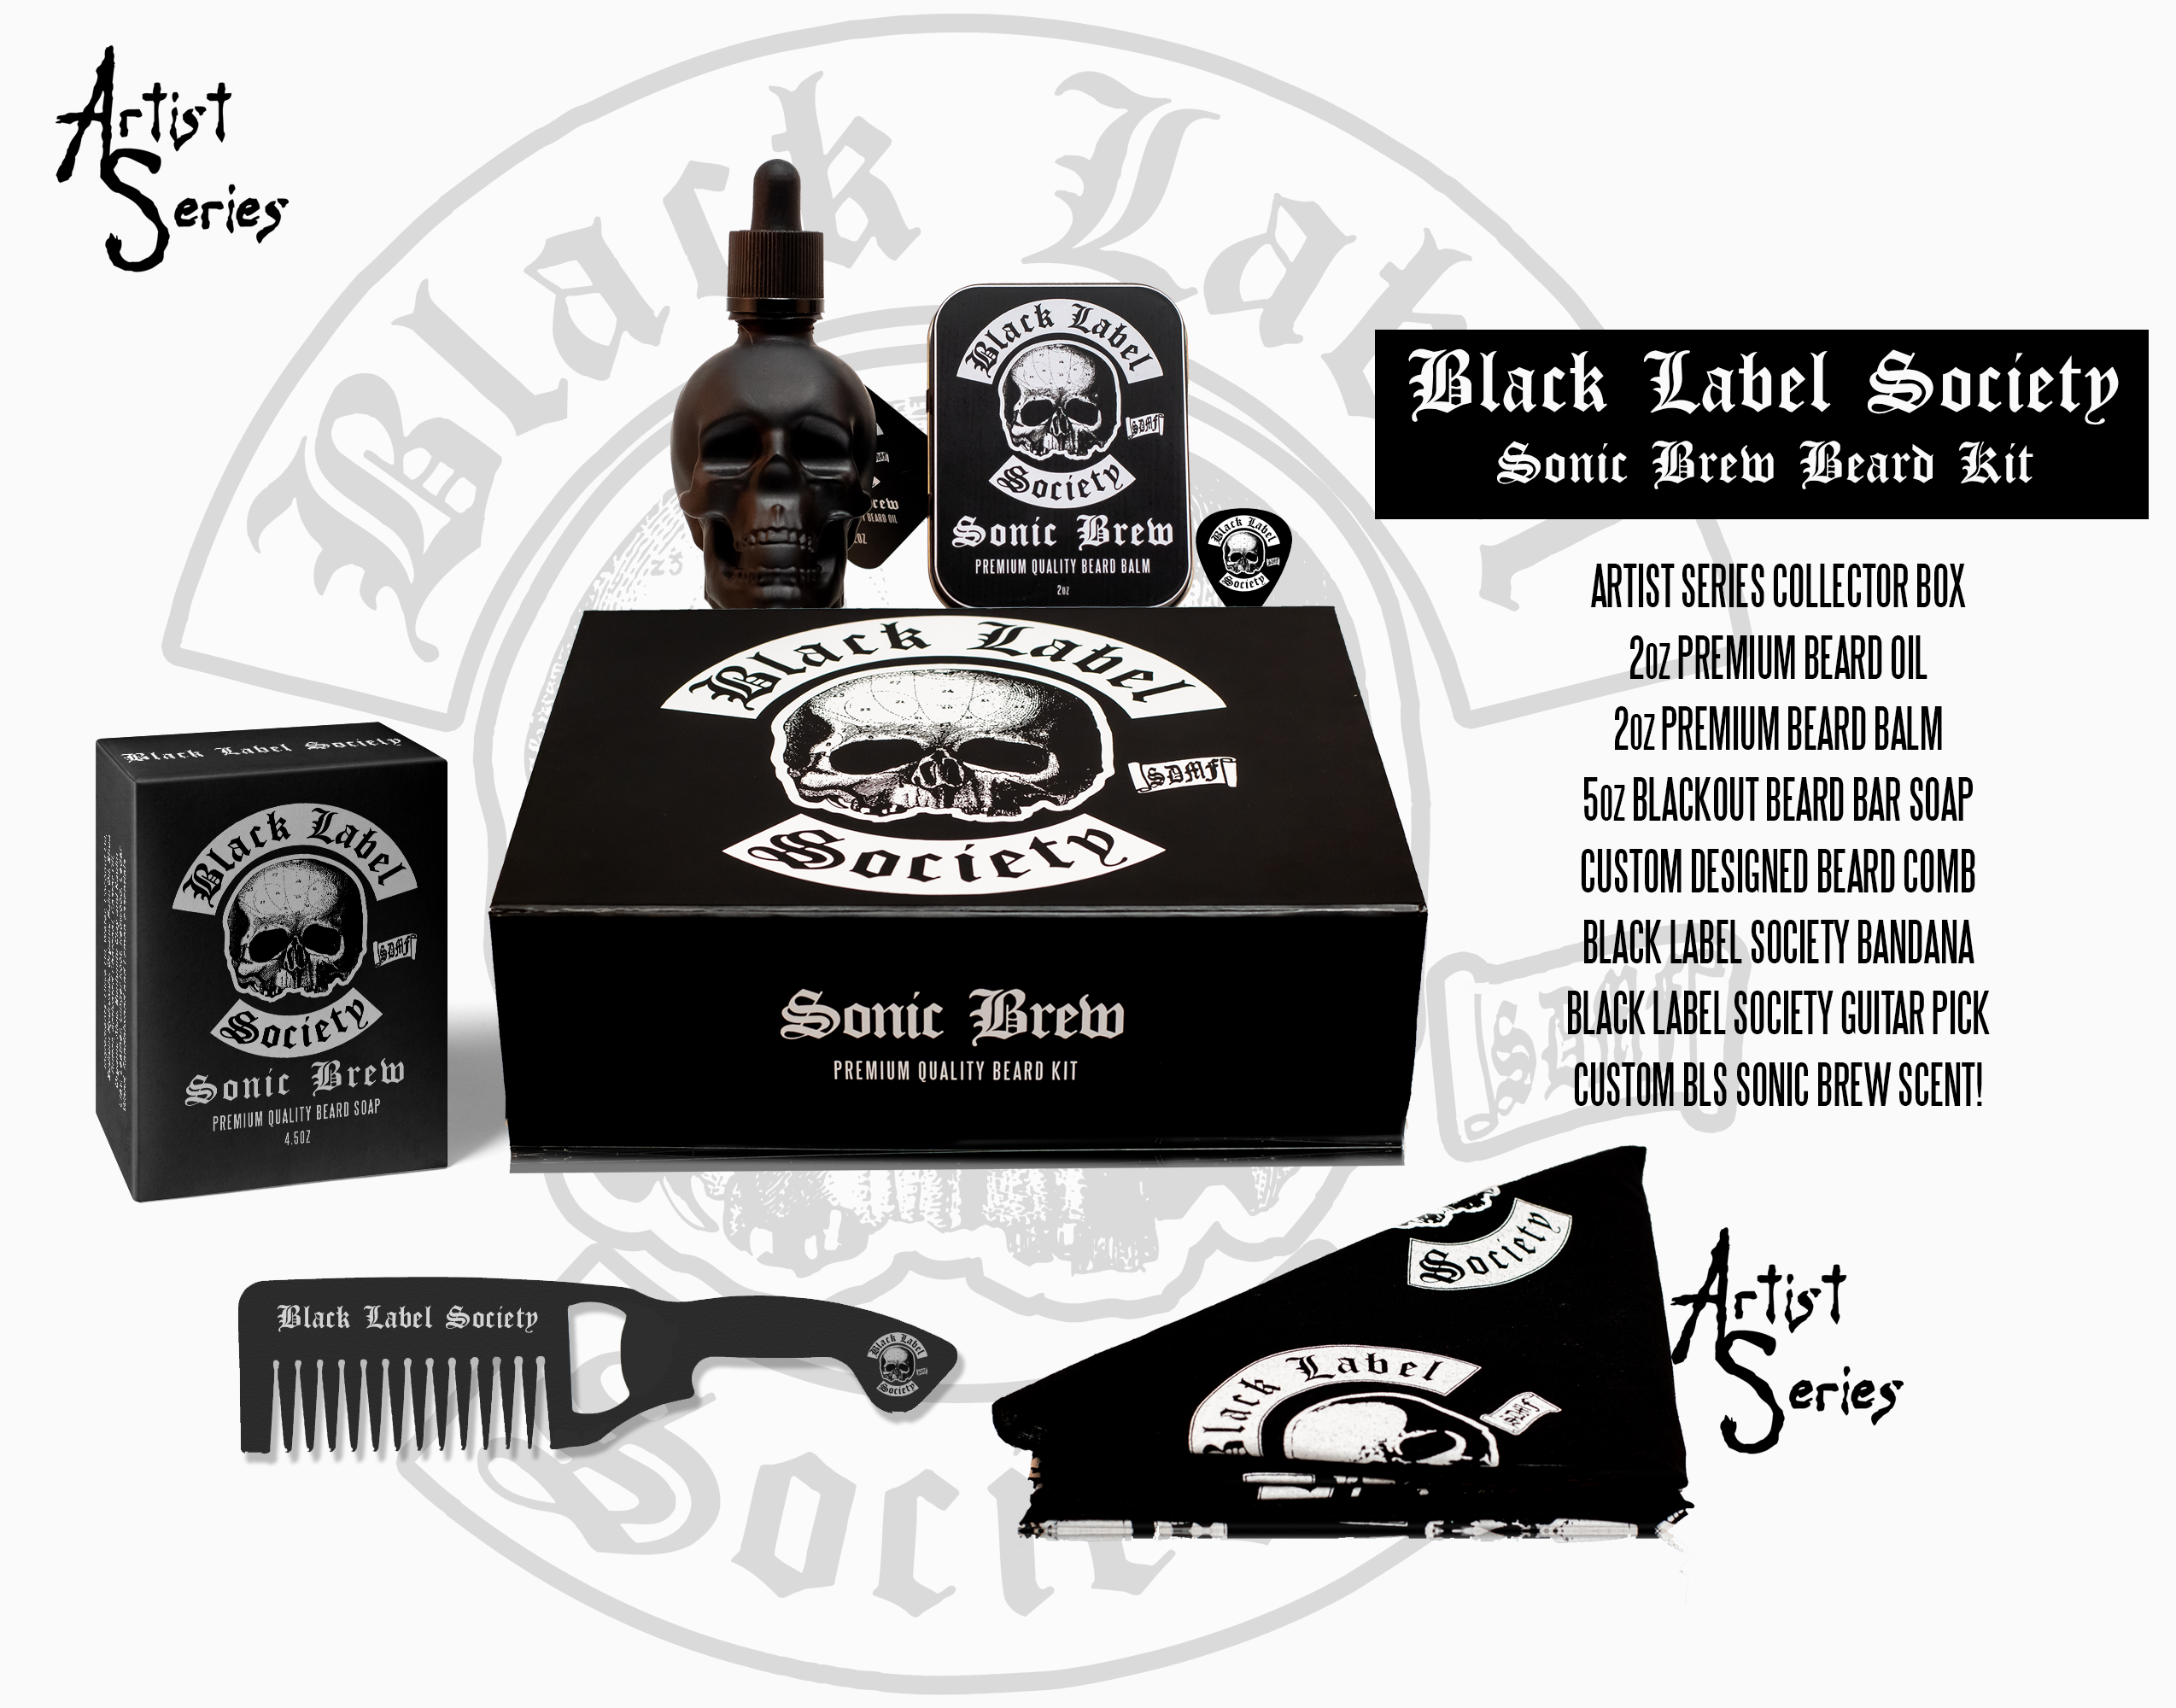 4ba634e2bdb5f Black Label Society Beard Kit (Artist Series) - Mad Viking Beard Co.